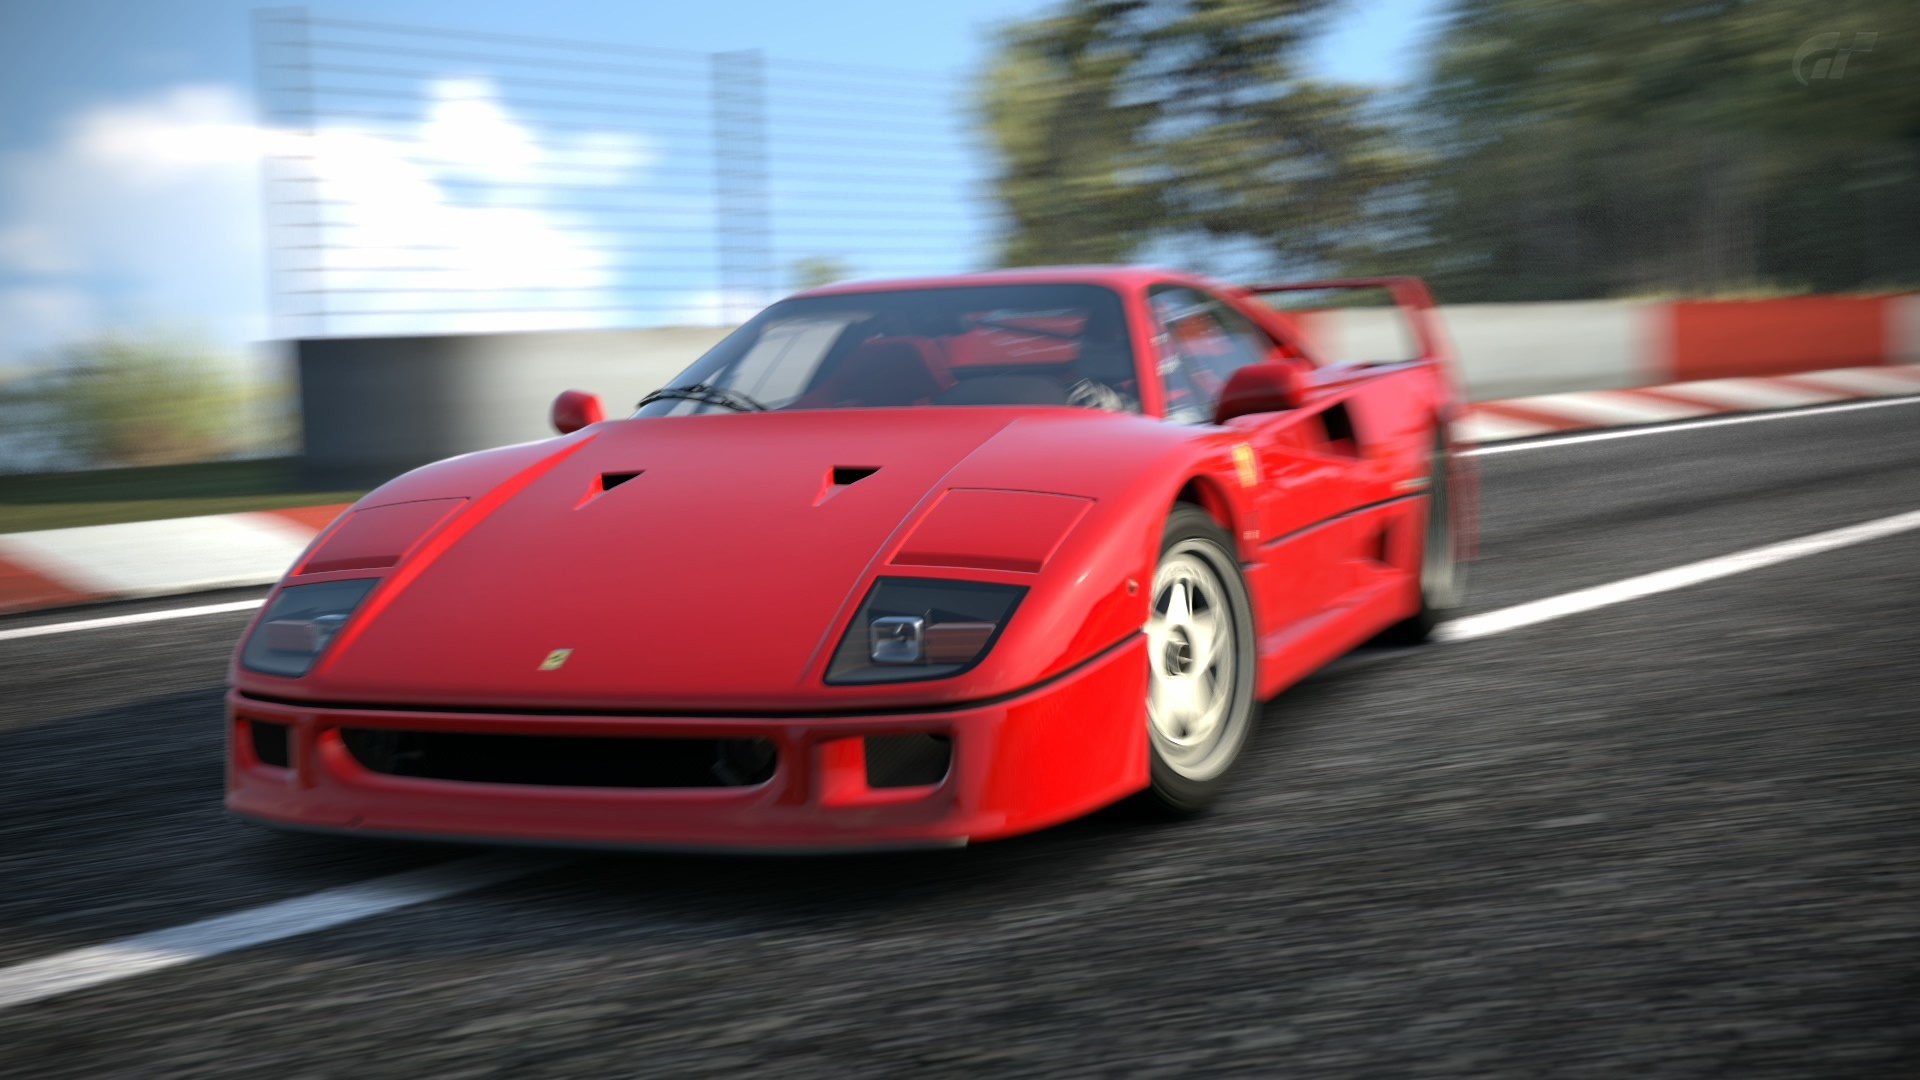 Super Car 5760x1080 Wallpaper Gran Turismo 6 Playstation 3 Car Ferrari Ferrari F40